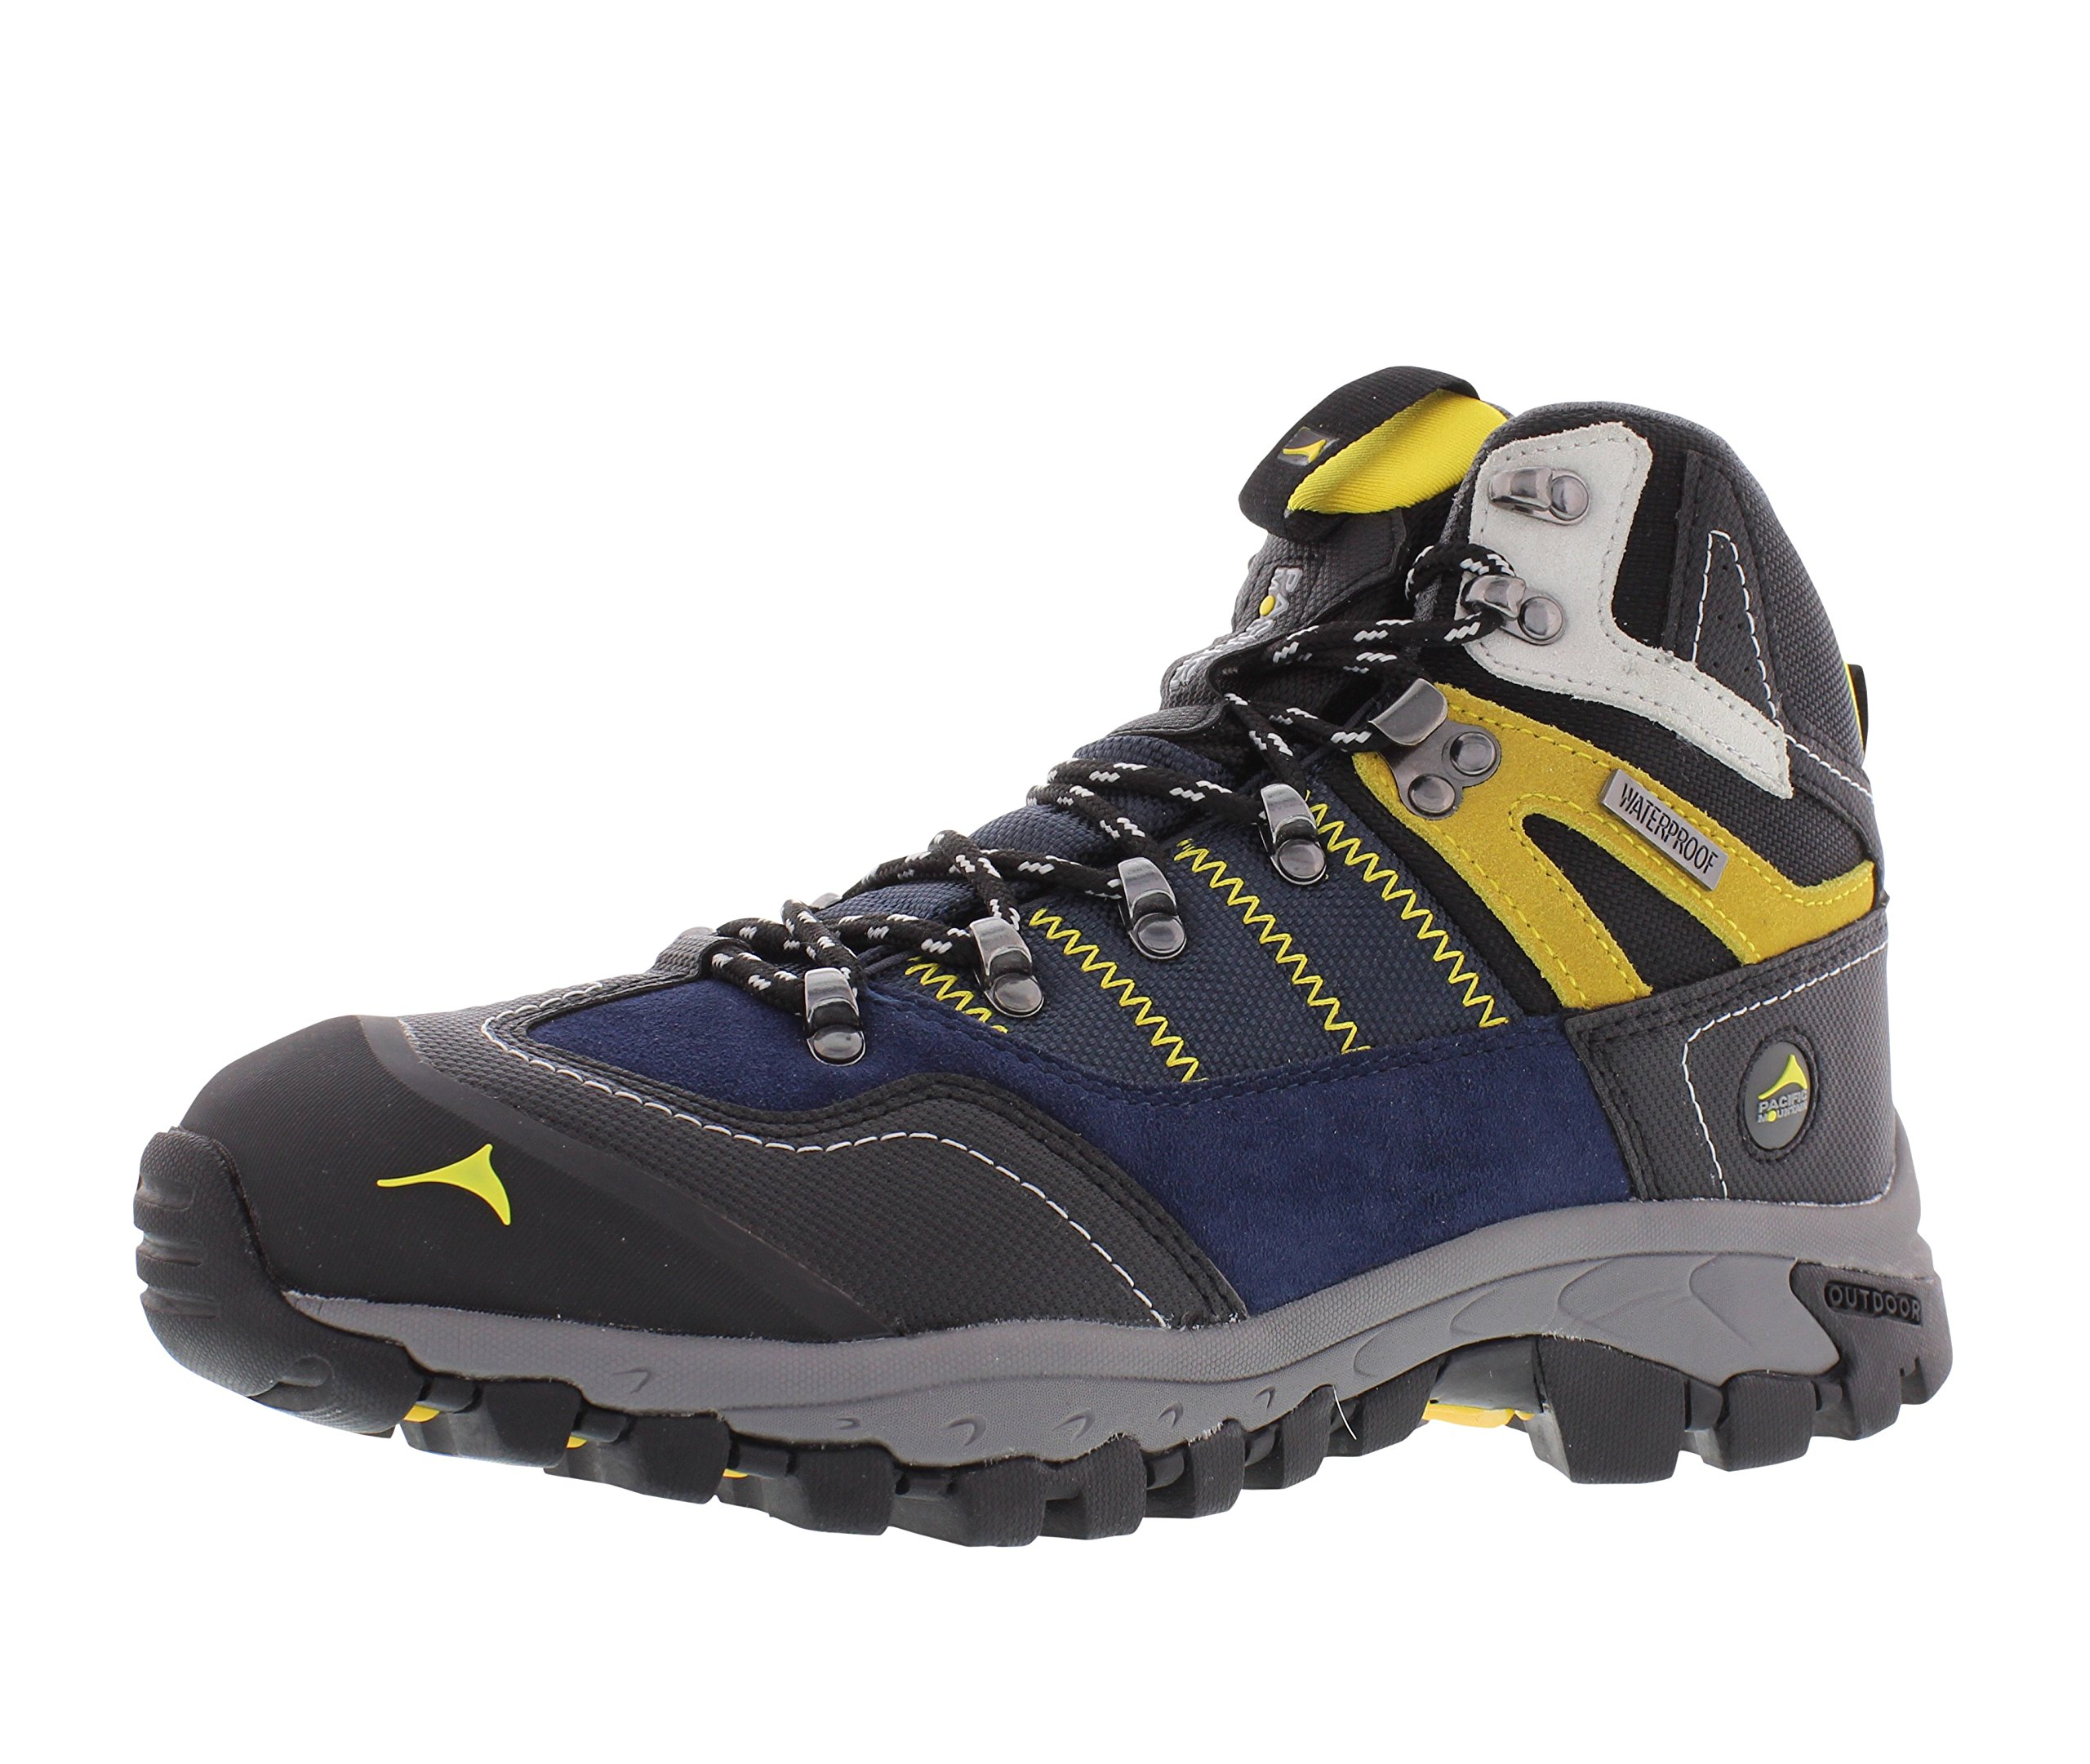 Pacific Mountain Ascend Men's Waterproof Hiking Backpacking Mid-Cut Navy/Black/Yellow Boots Size 11 by Pacific Mountain